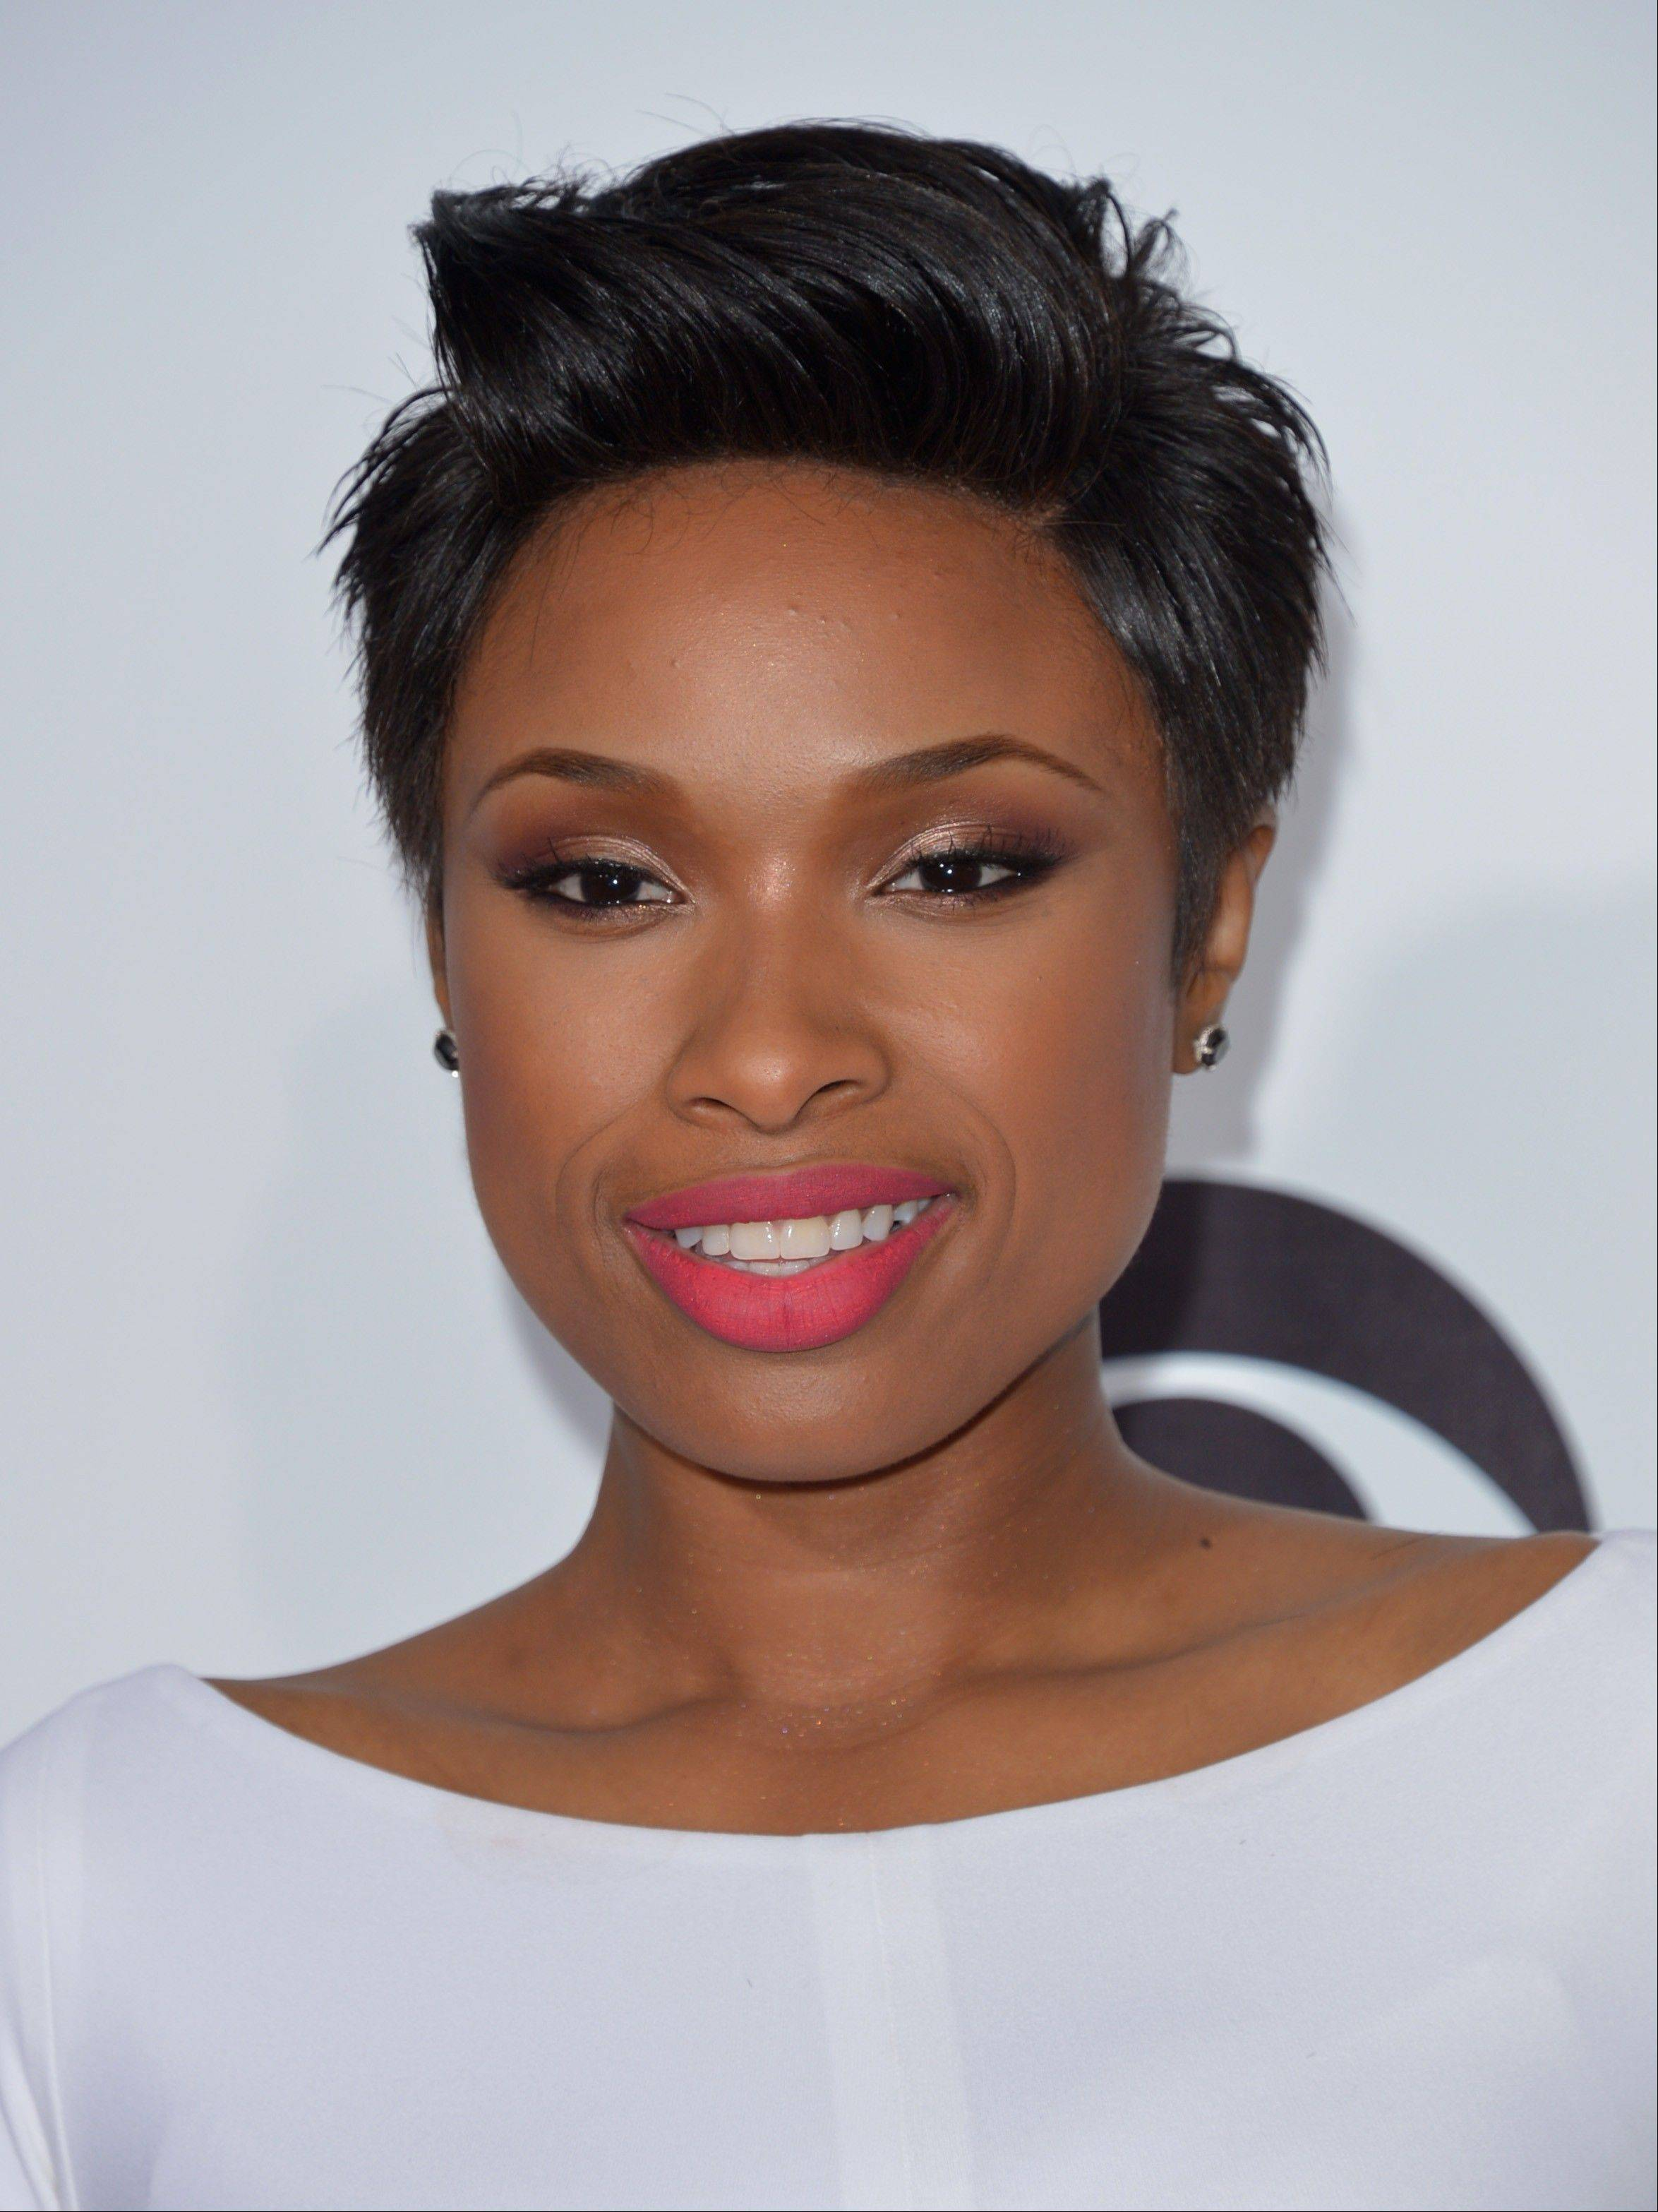 Associated PressJennifer Hudson arrives at the 40th annual People's Choice Awards at Nokia Theatre L.A. Live on Wednesday, Jan. 8, 2014, in Los Angeles.